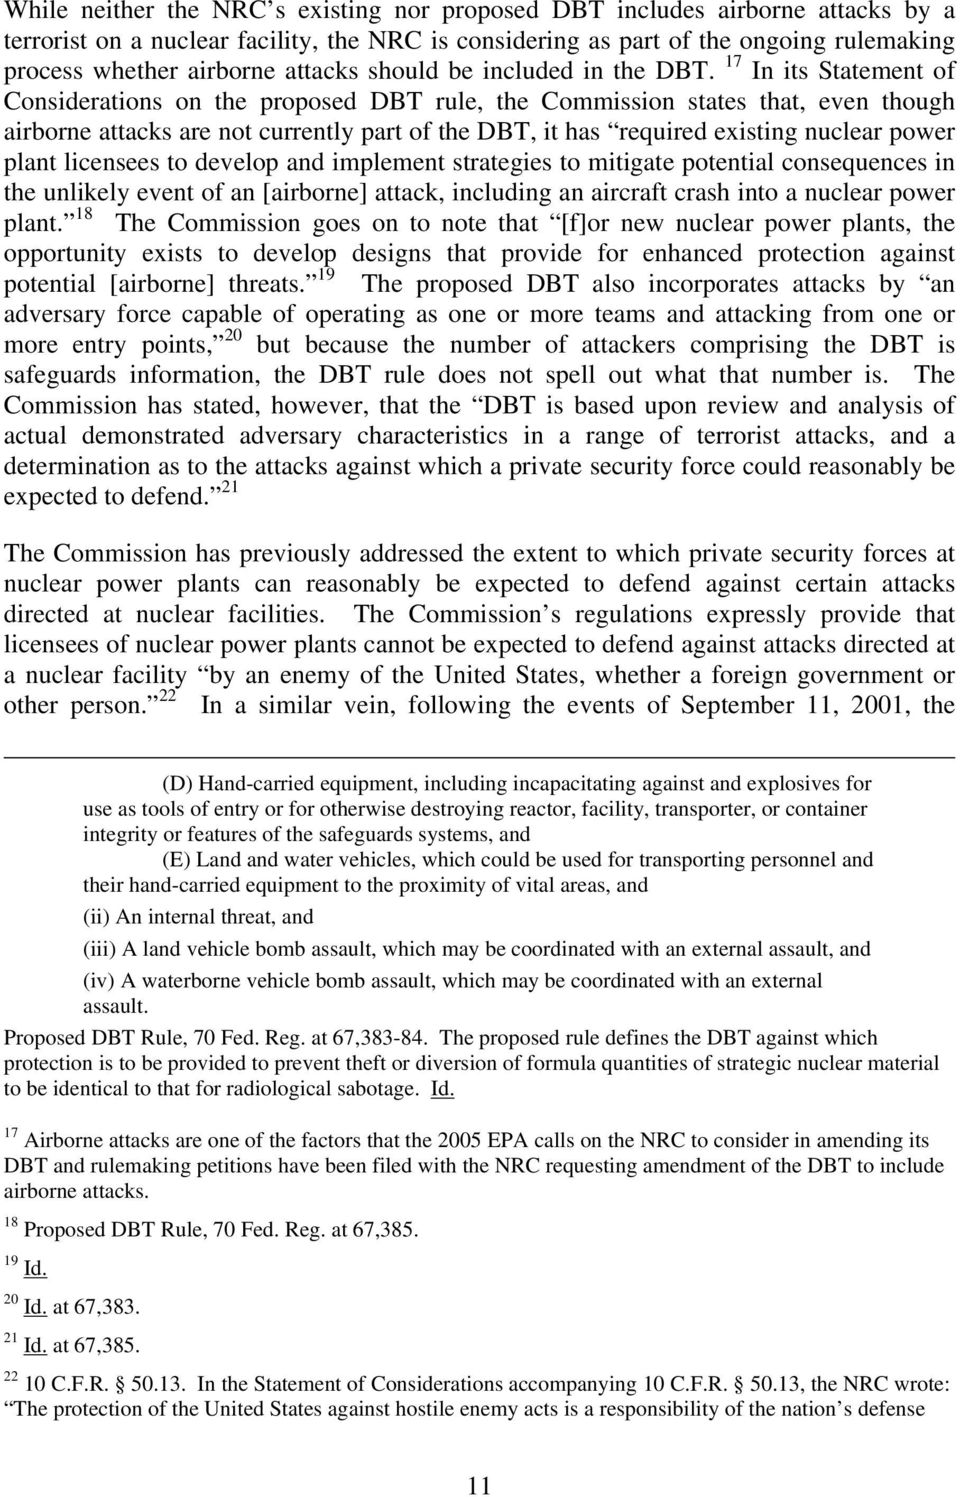 17 In its Statement of Considerations on the proposed DBT rule, the Commission states that, even though airborne attacks are not currently part of the DBT, it has required existing nuclear power